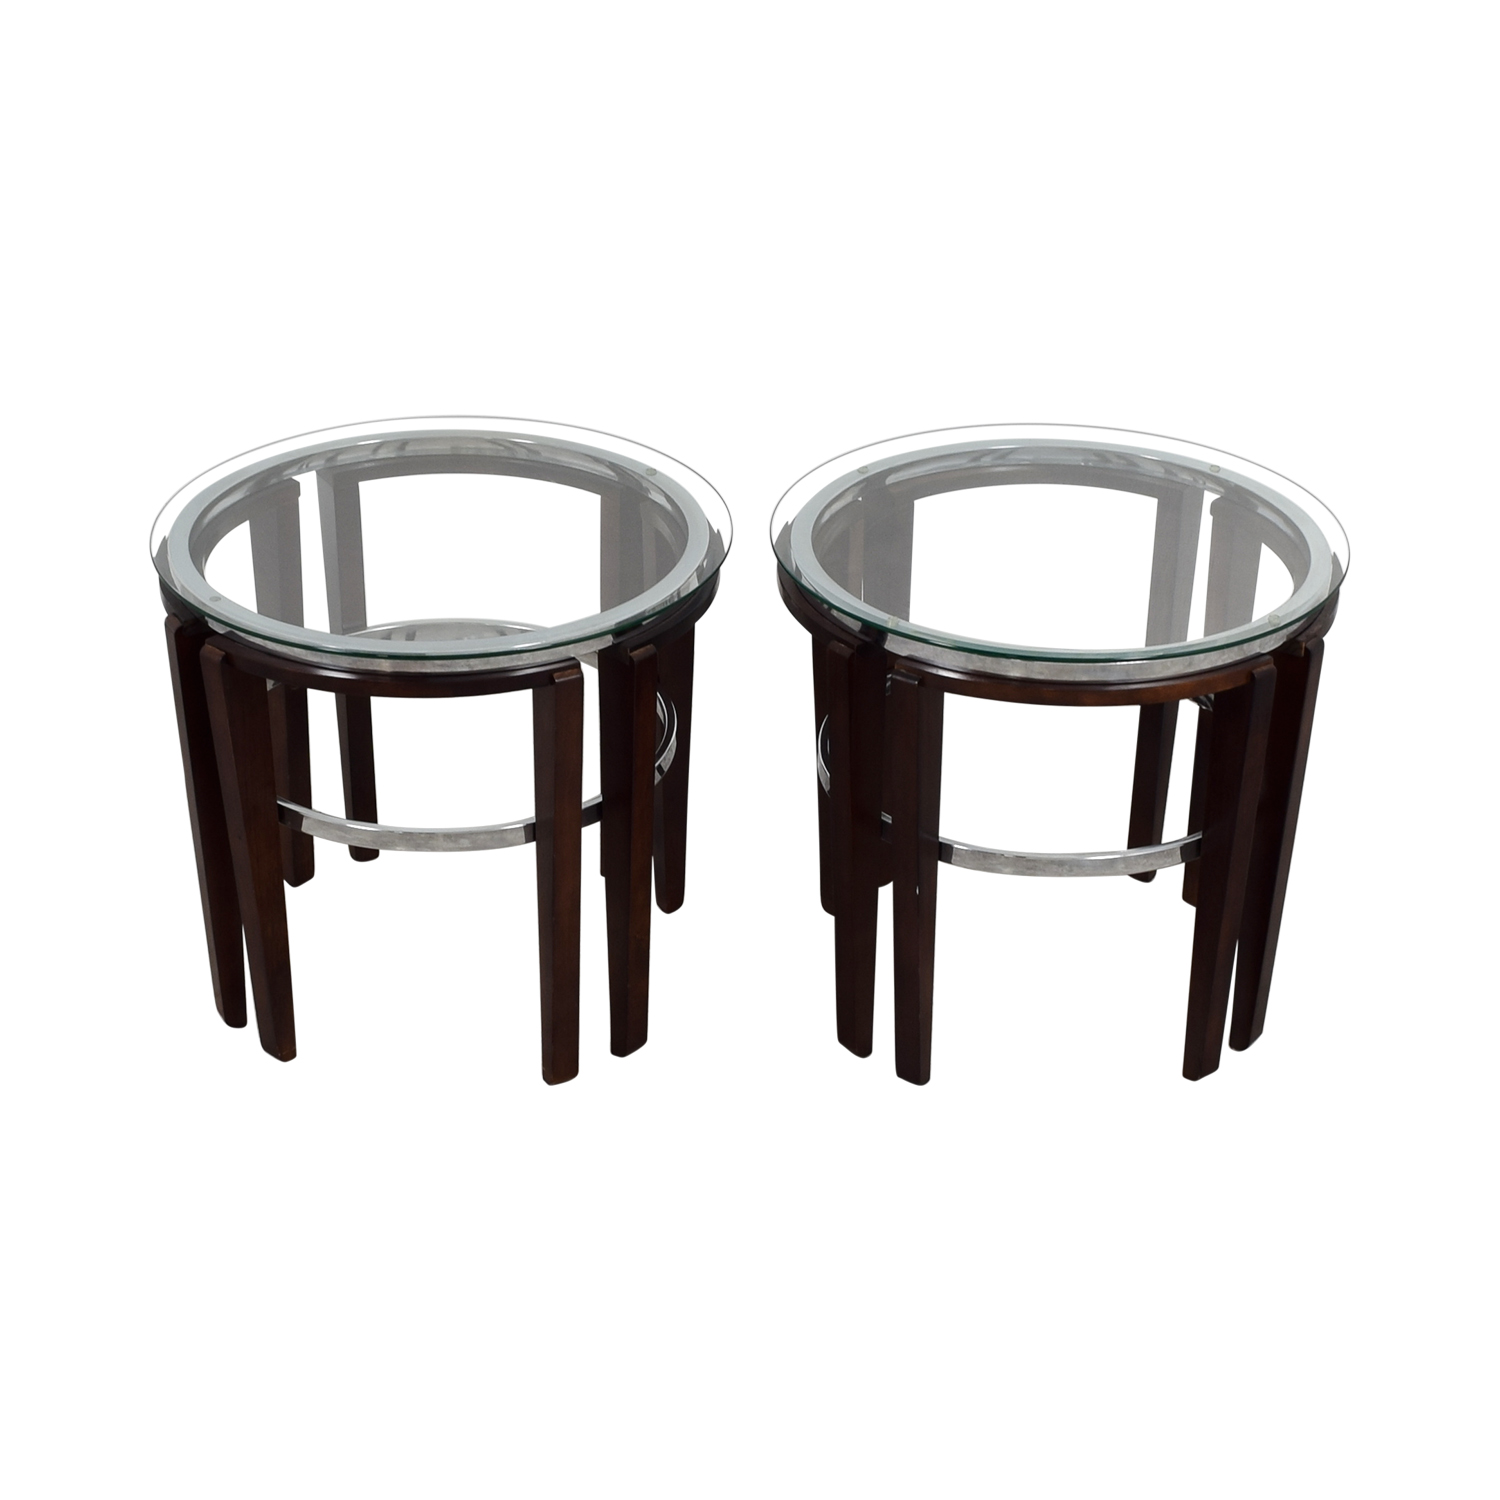 Round Glass and Wood End Tables